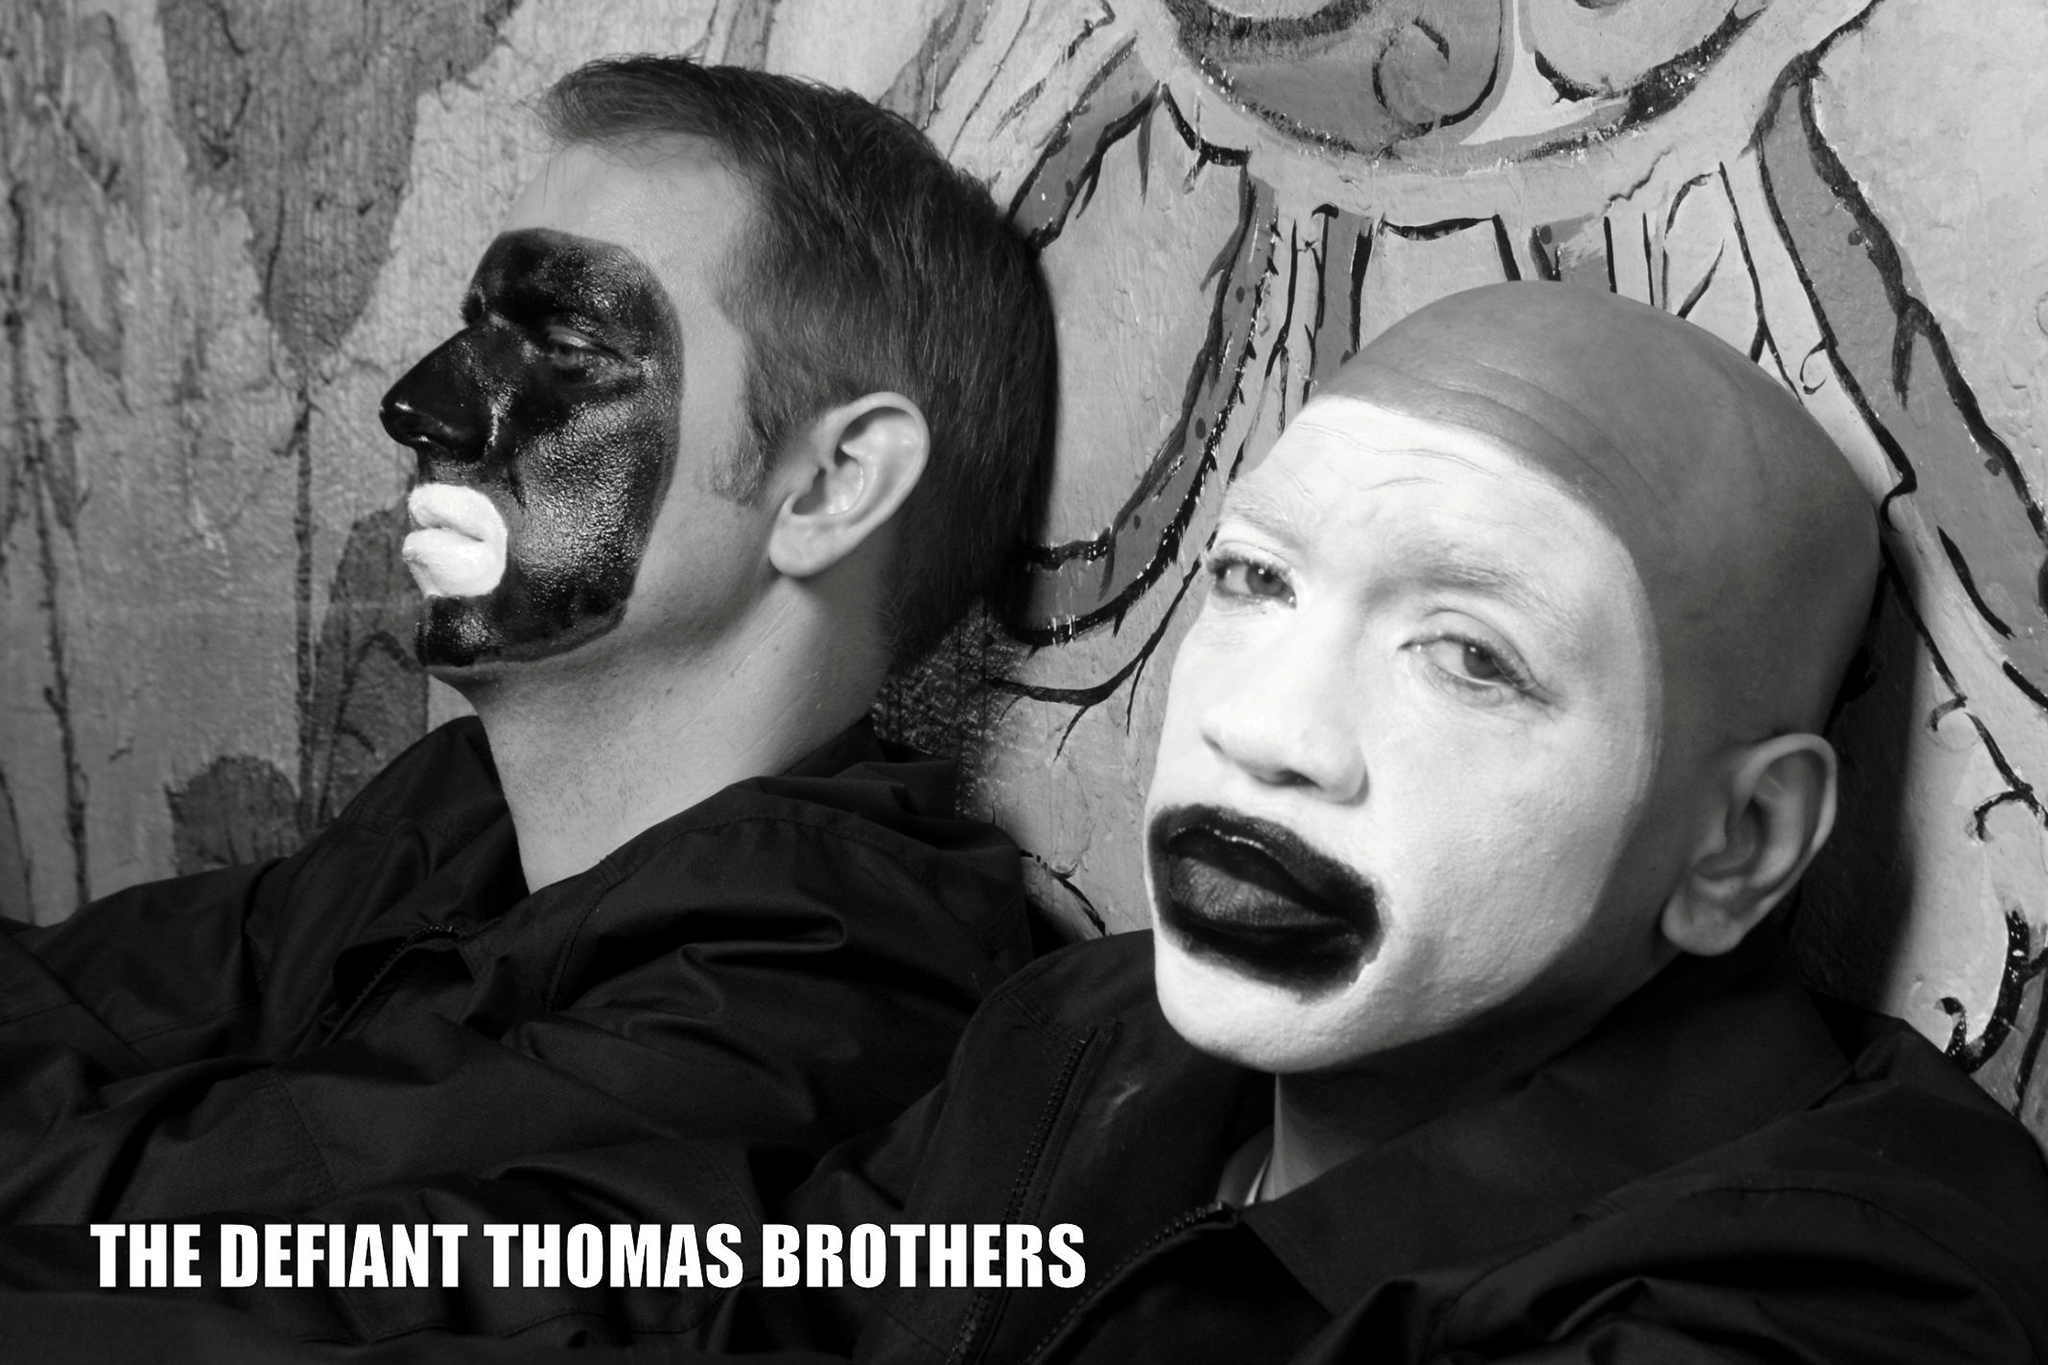 The Defiant Thomas Brothers